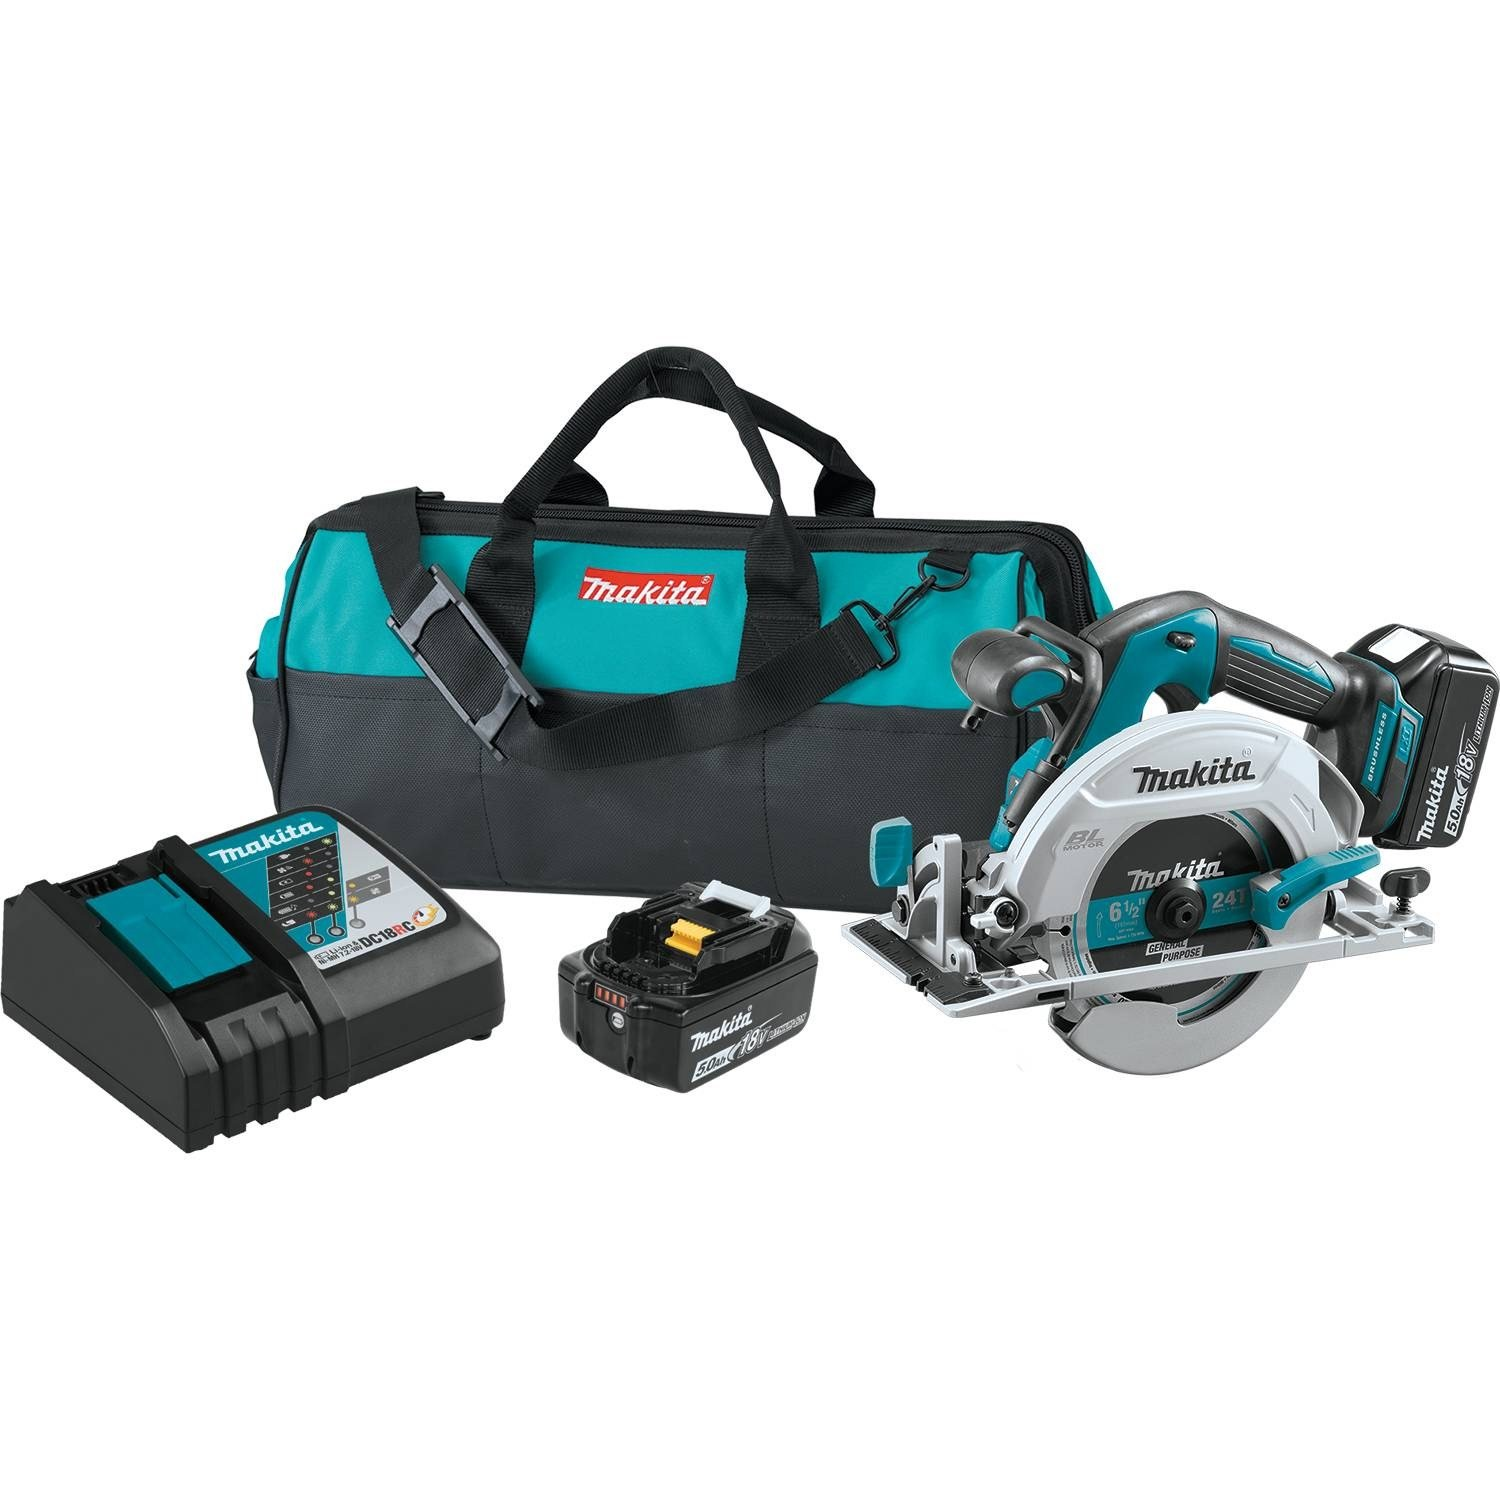 Makita XSH03T 18V LXT Lithium-Ion Brushless Cordless 6-1 2 Circular Saw Kit 5.0Ah